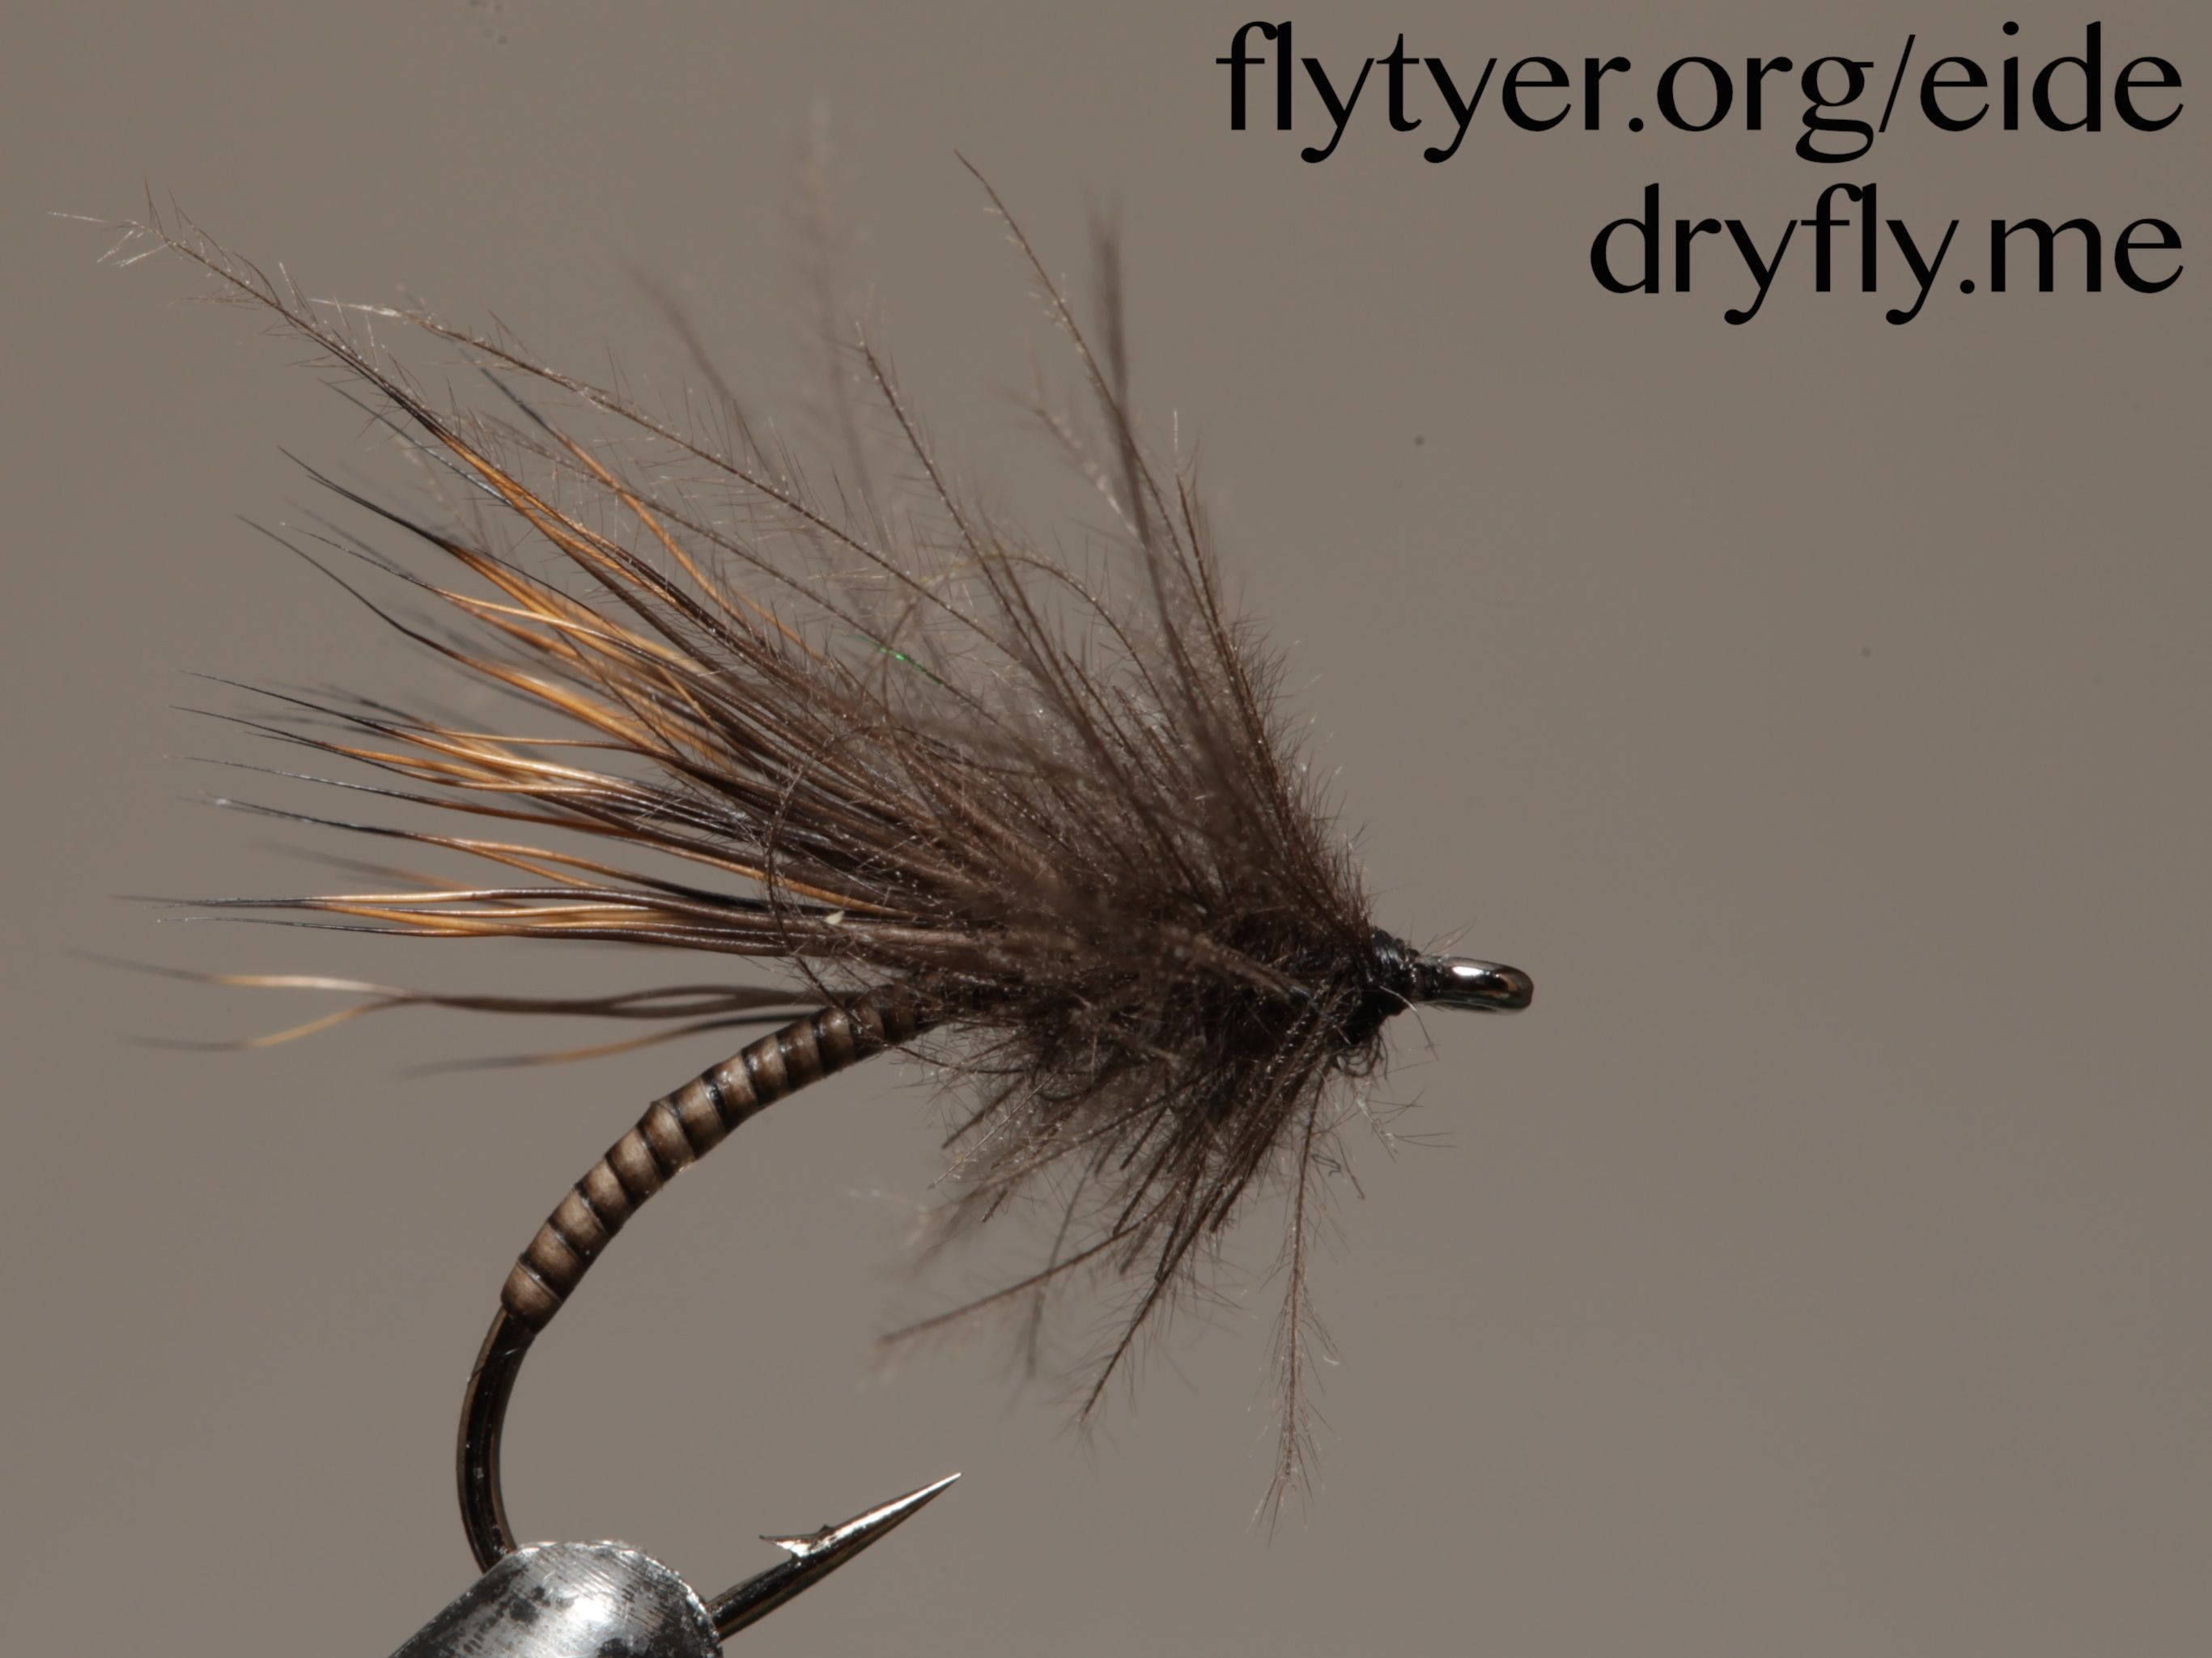 Pin by Andrew Sherkness on Flies | Fly fishing, Fly tying, Fly tying